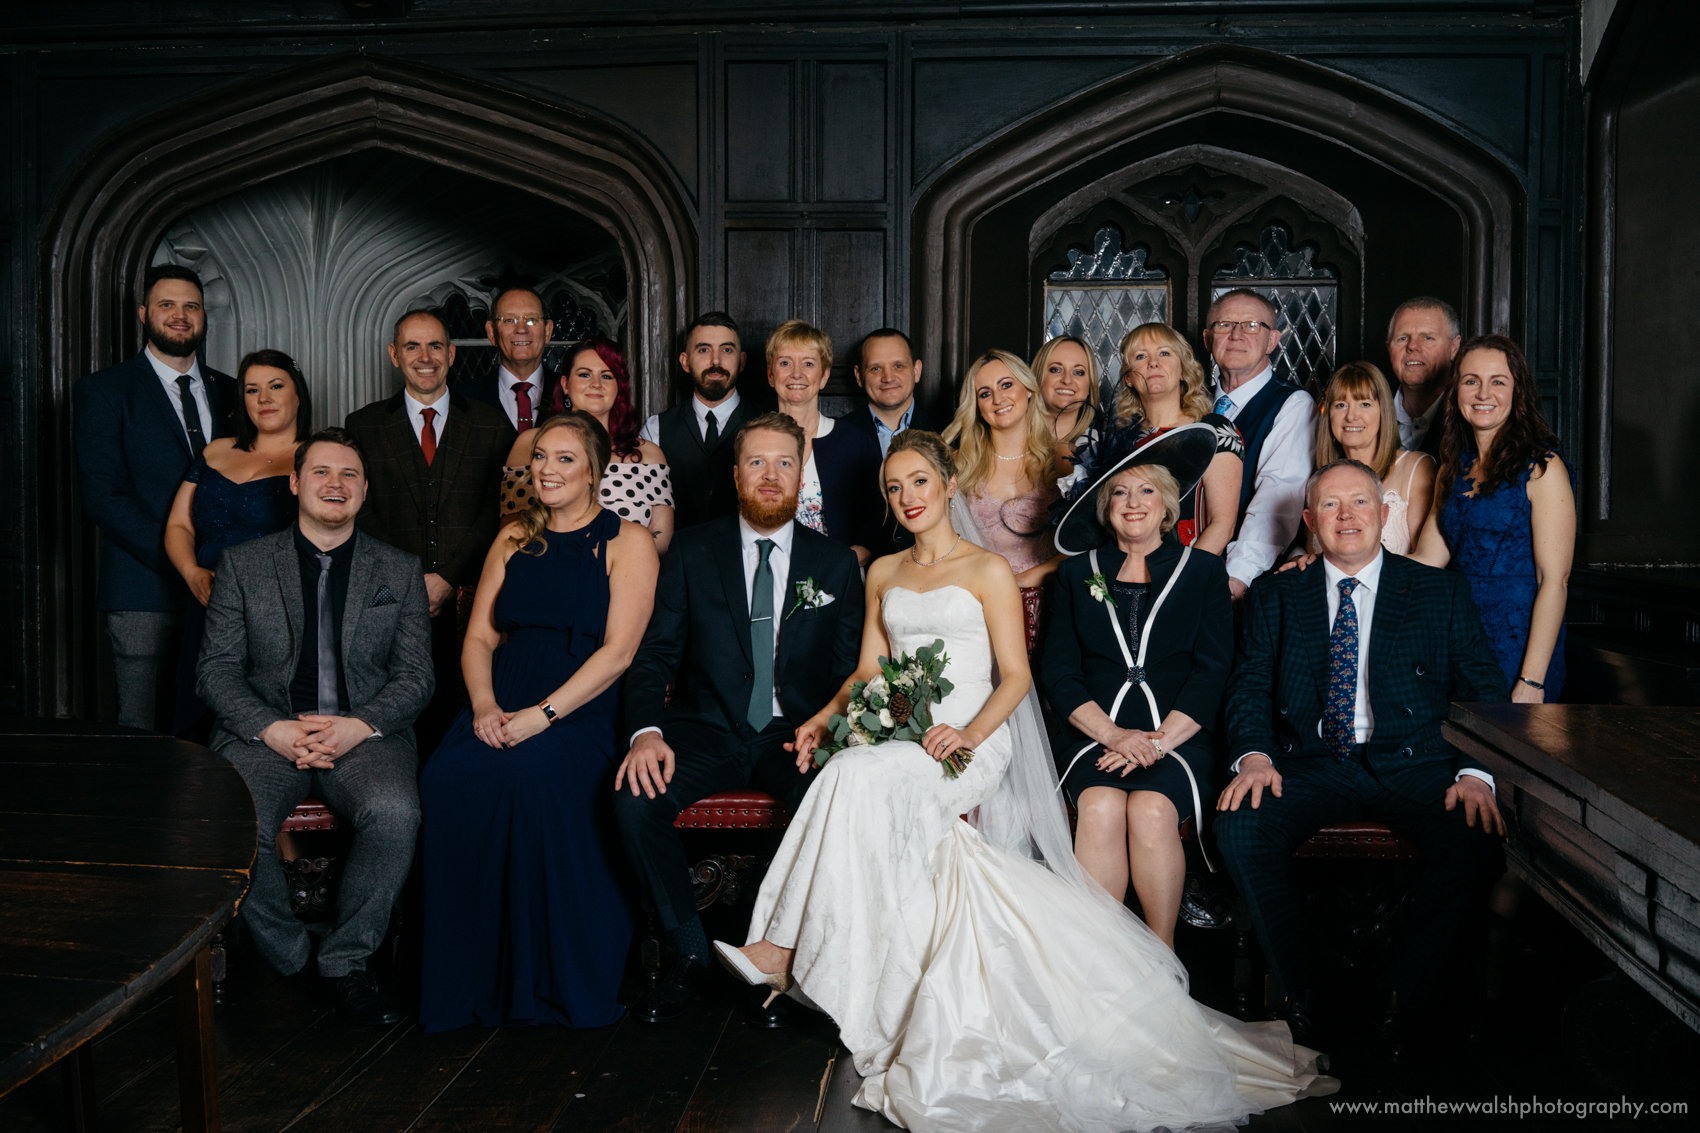 A wedding is the perfect time for a family portrait